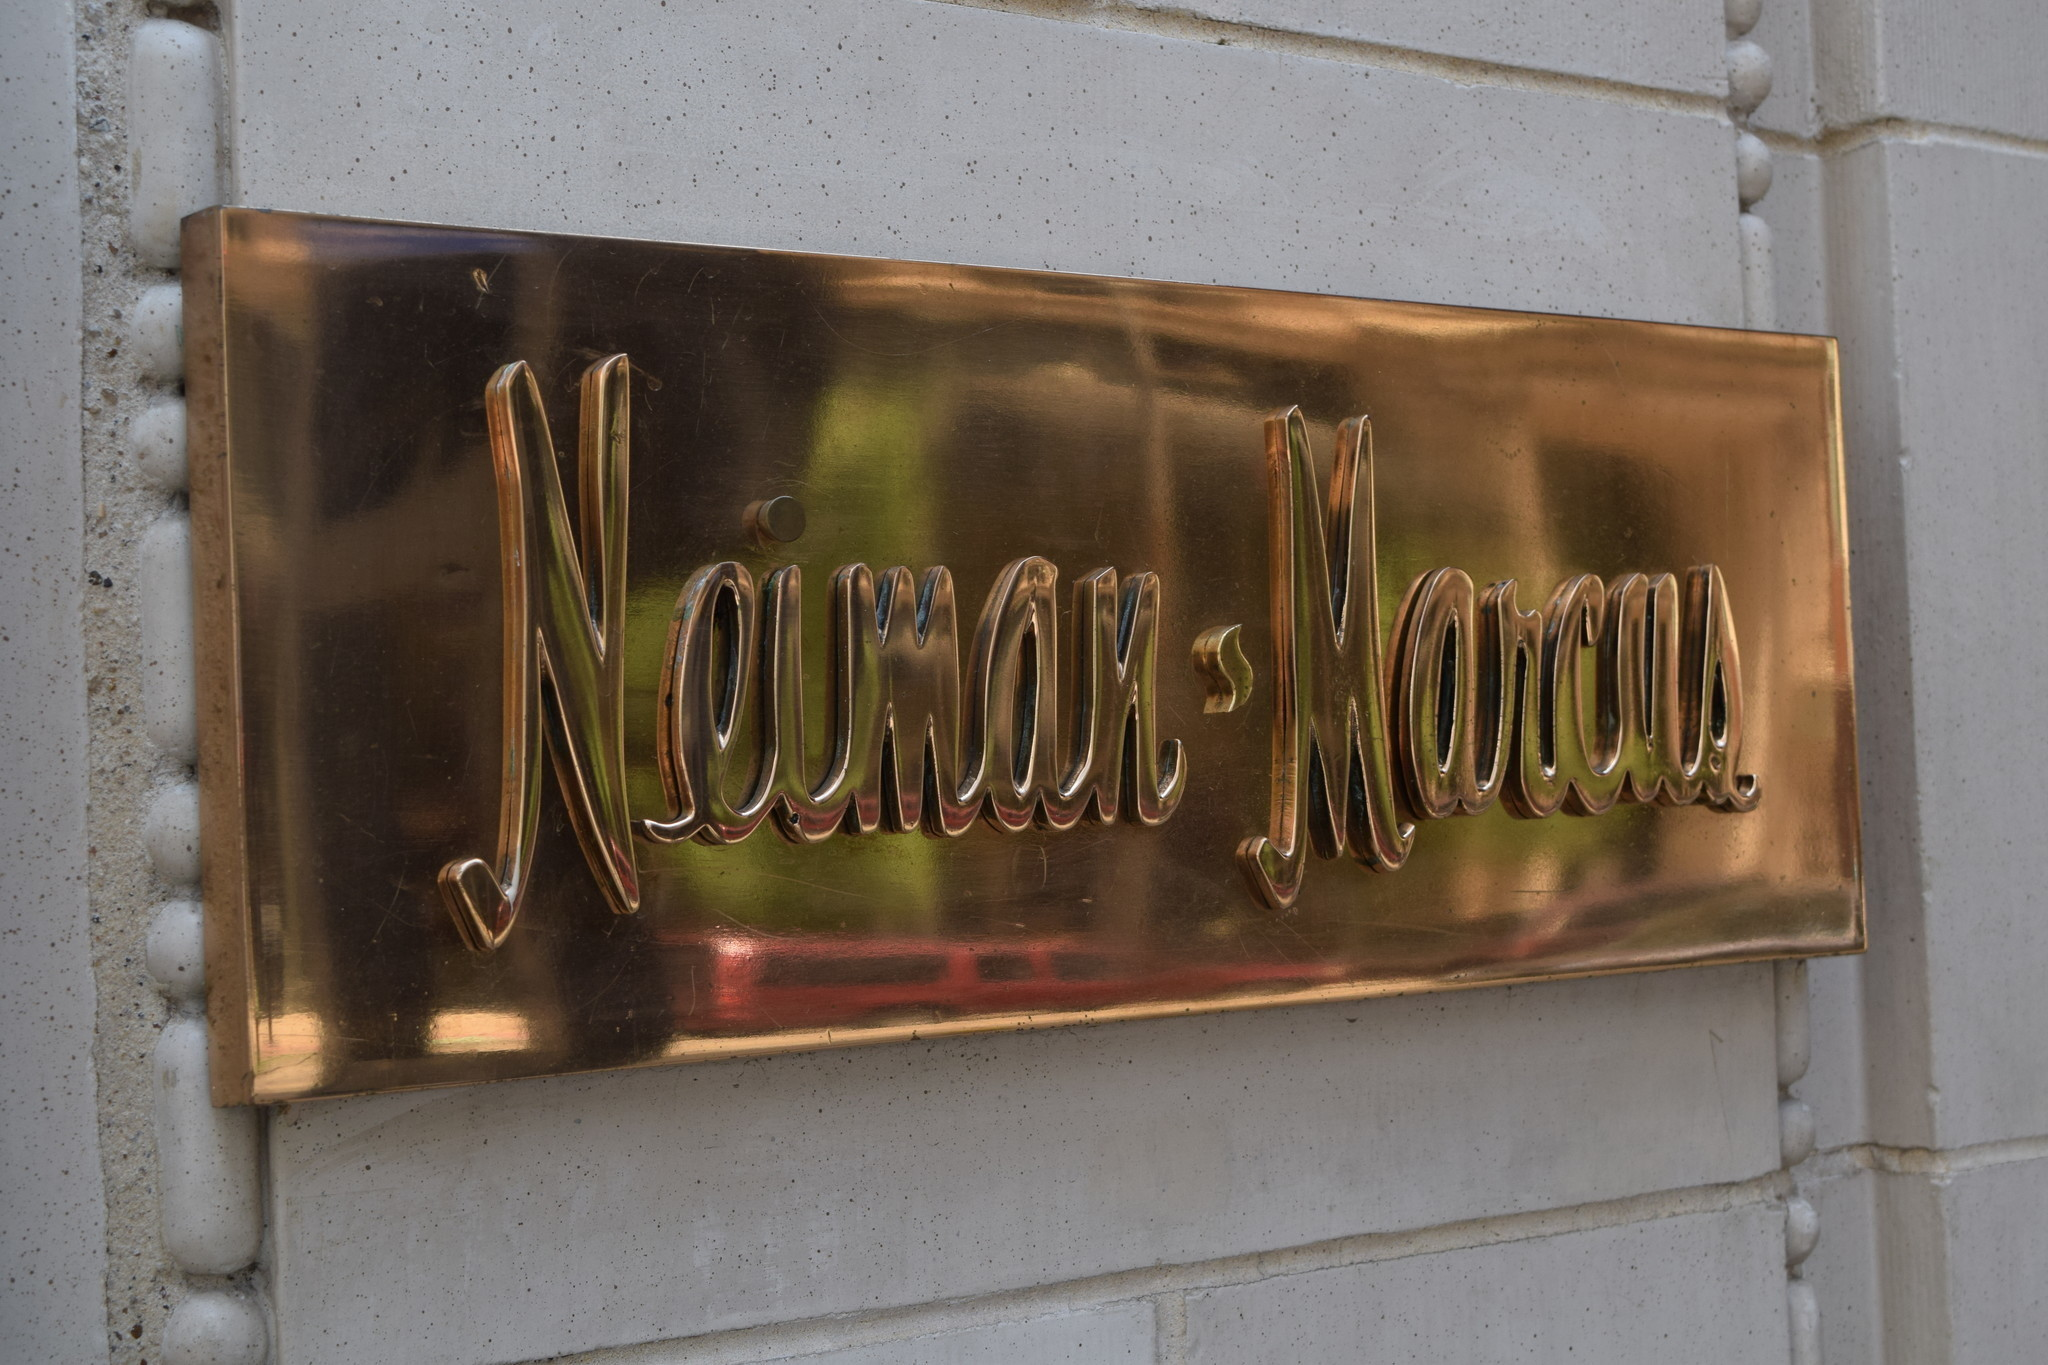 Neiman Marcus won't go public after all